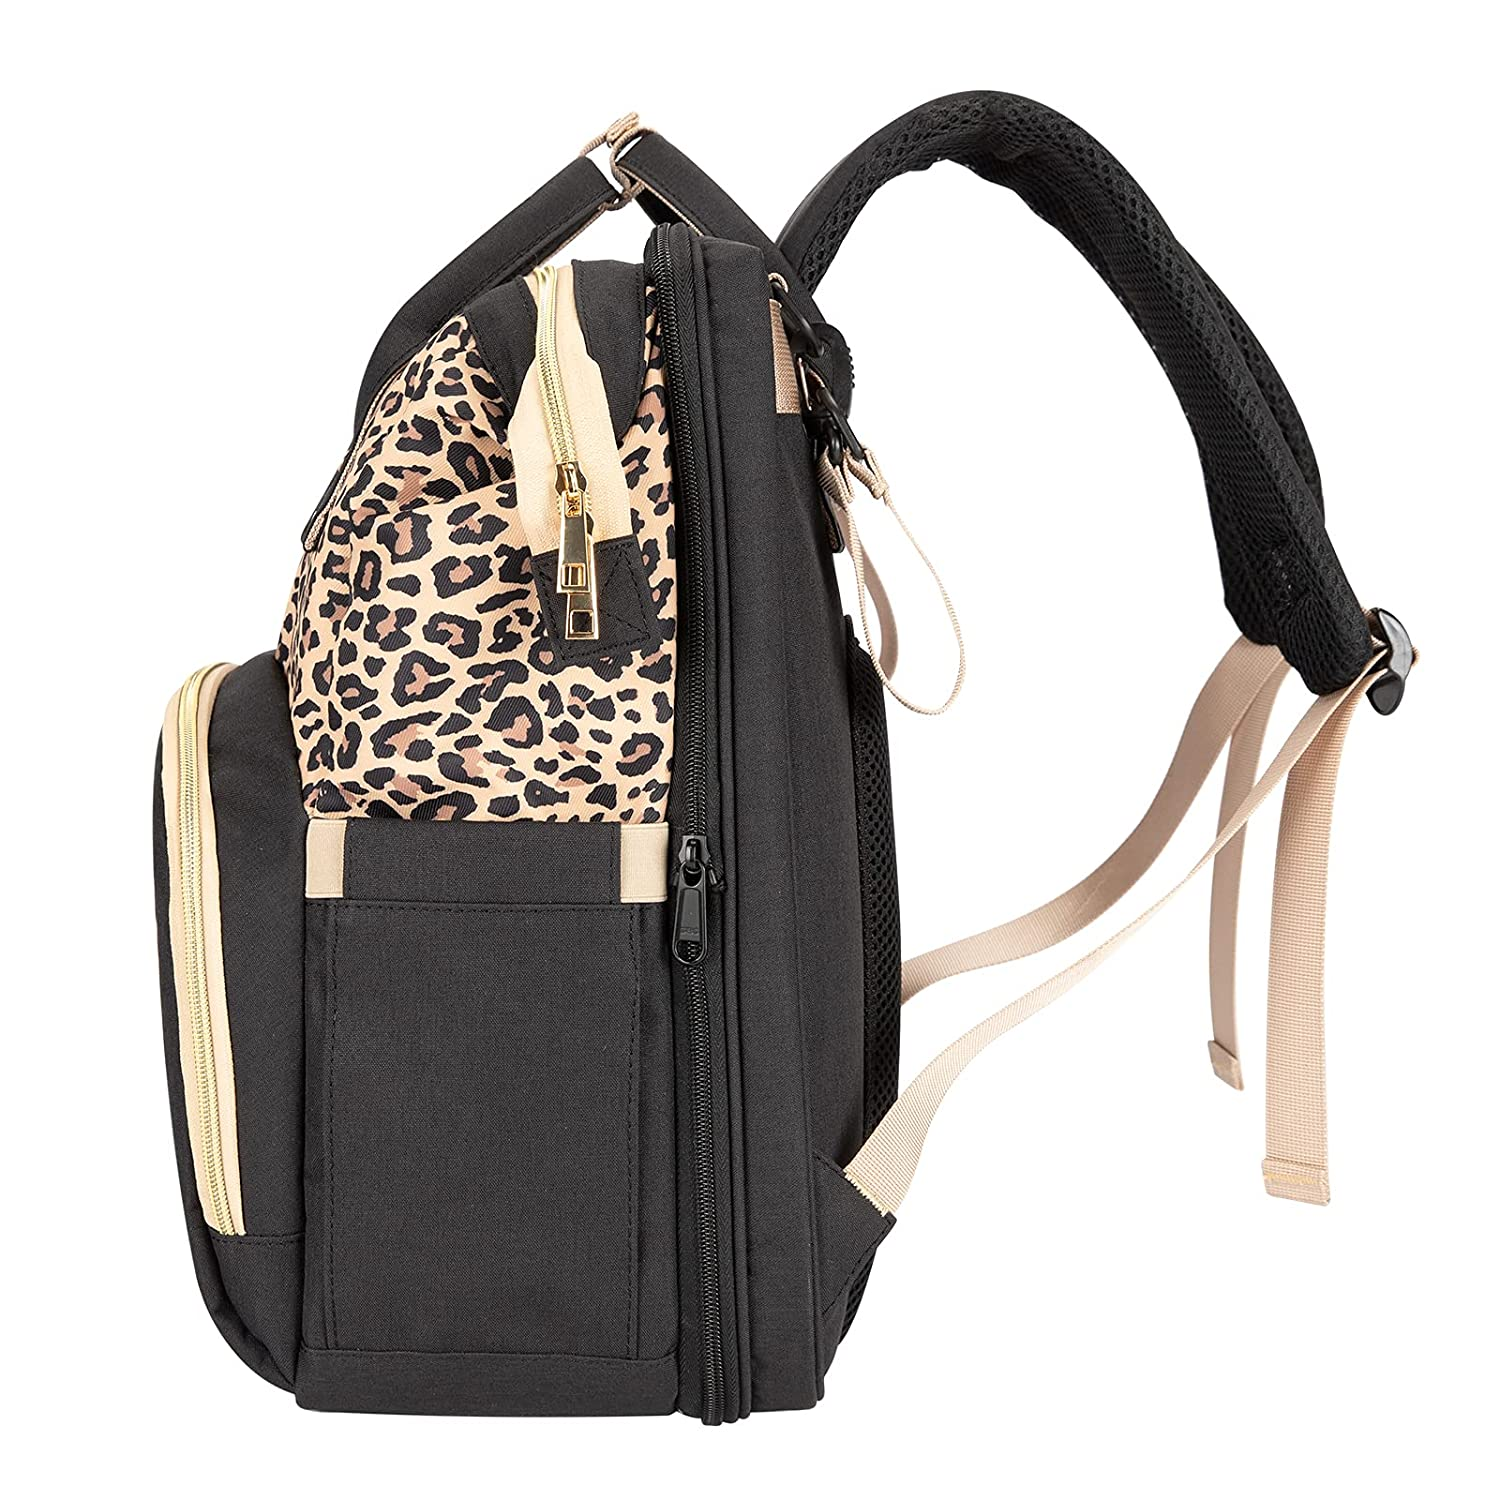 Best BB Diaper Bag Backpack with Changing Station and Charging Port, Travel Foldable Baby Bed/Portable Bassinet, Multi-Function Large Capacity Baby Bag, Waterproof, Stroller Straps, Leopard